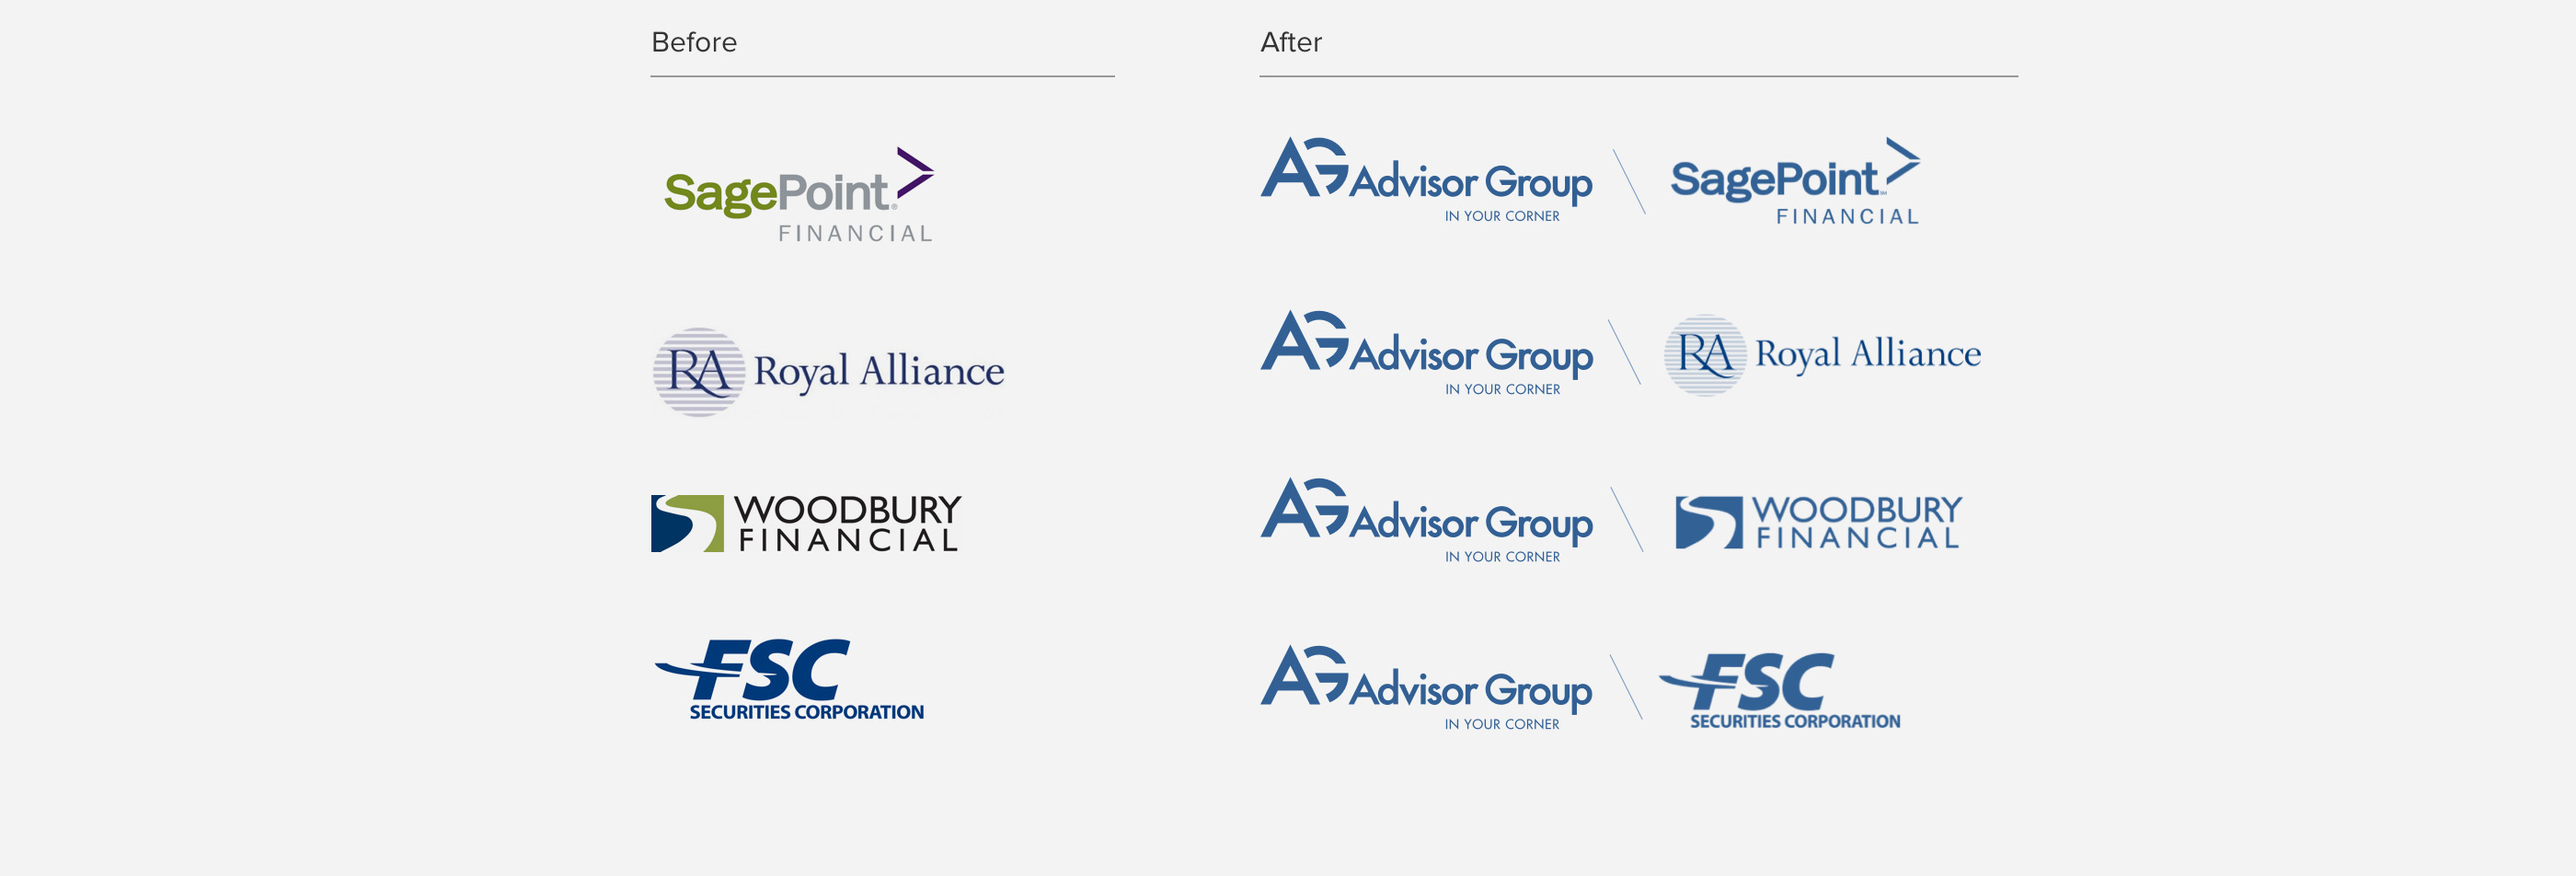 Advisor Group Brand Guideline Logos by Blue Flame Thinking